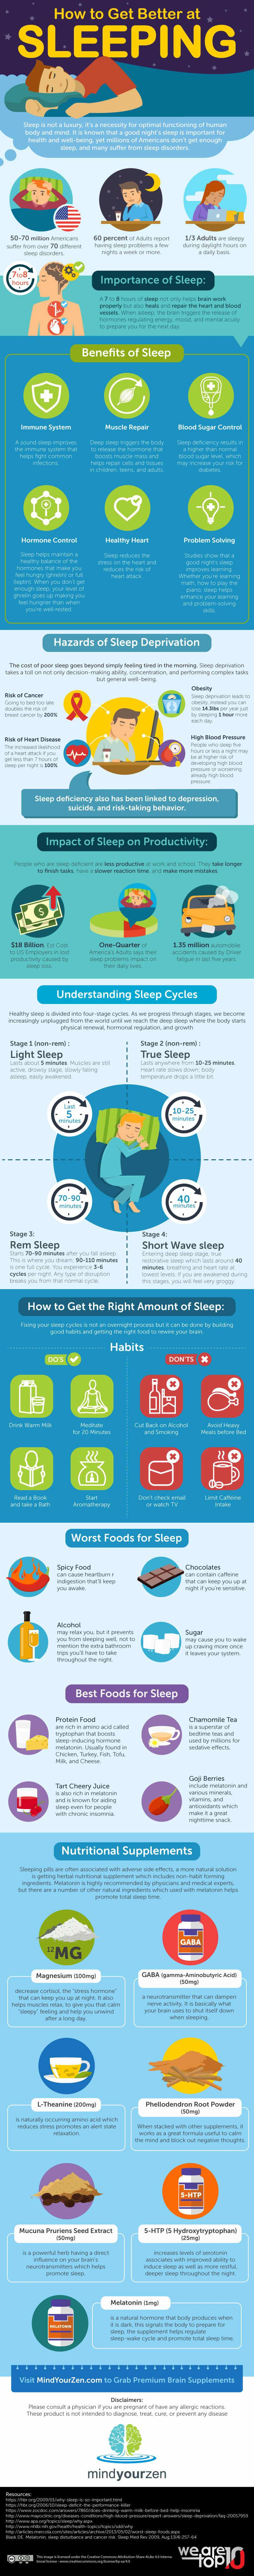 Sleep Better, Live Strong: How to Improve Your Sleep Cycle - Infographic